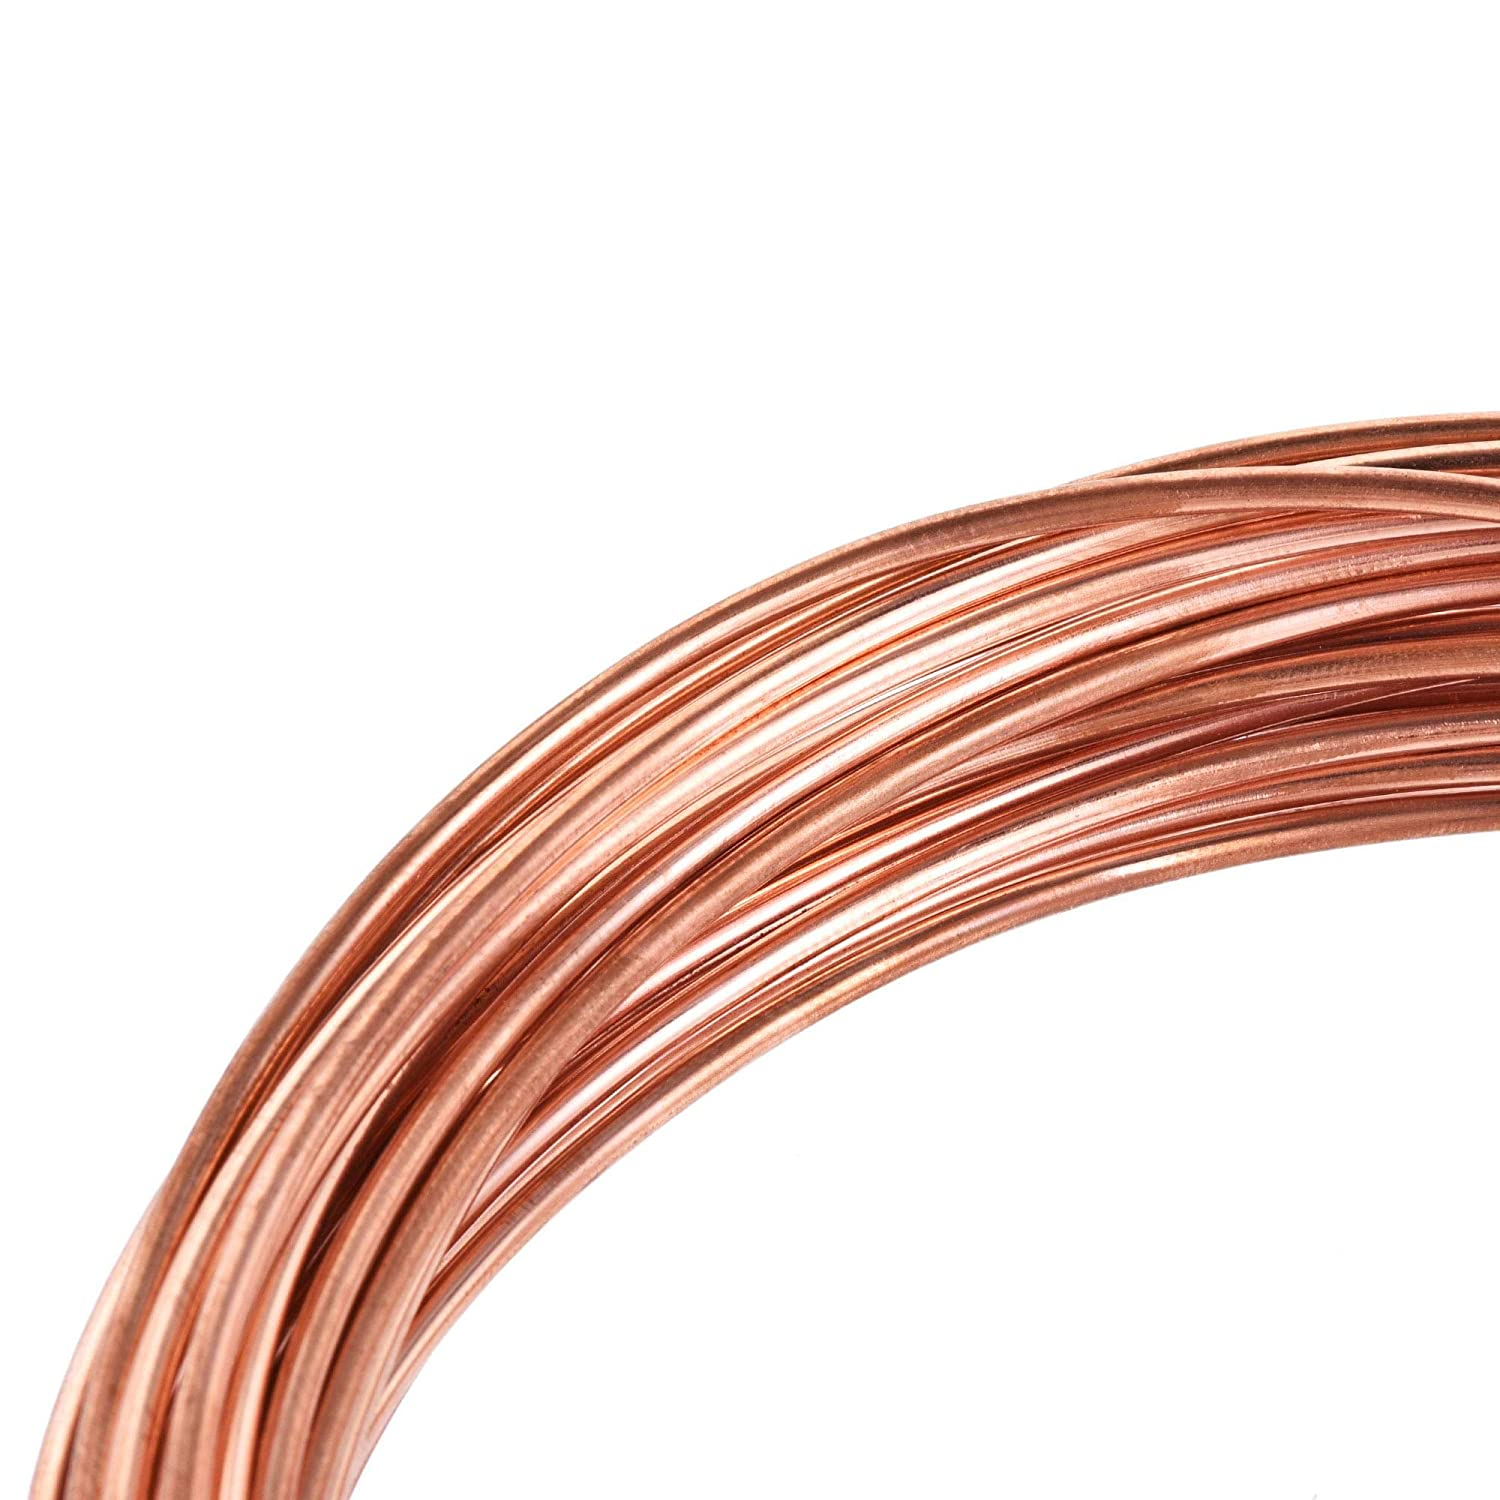 uxcell Refrigeration Tubing 1.8mm OD x 0.8mm ID x 24.5Ft Length Copper Tubing Coil